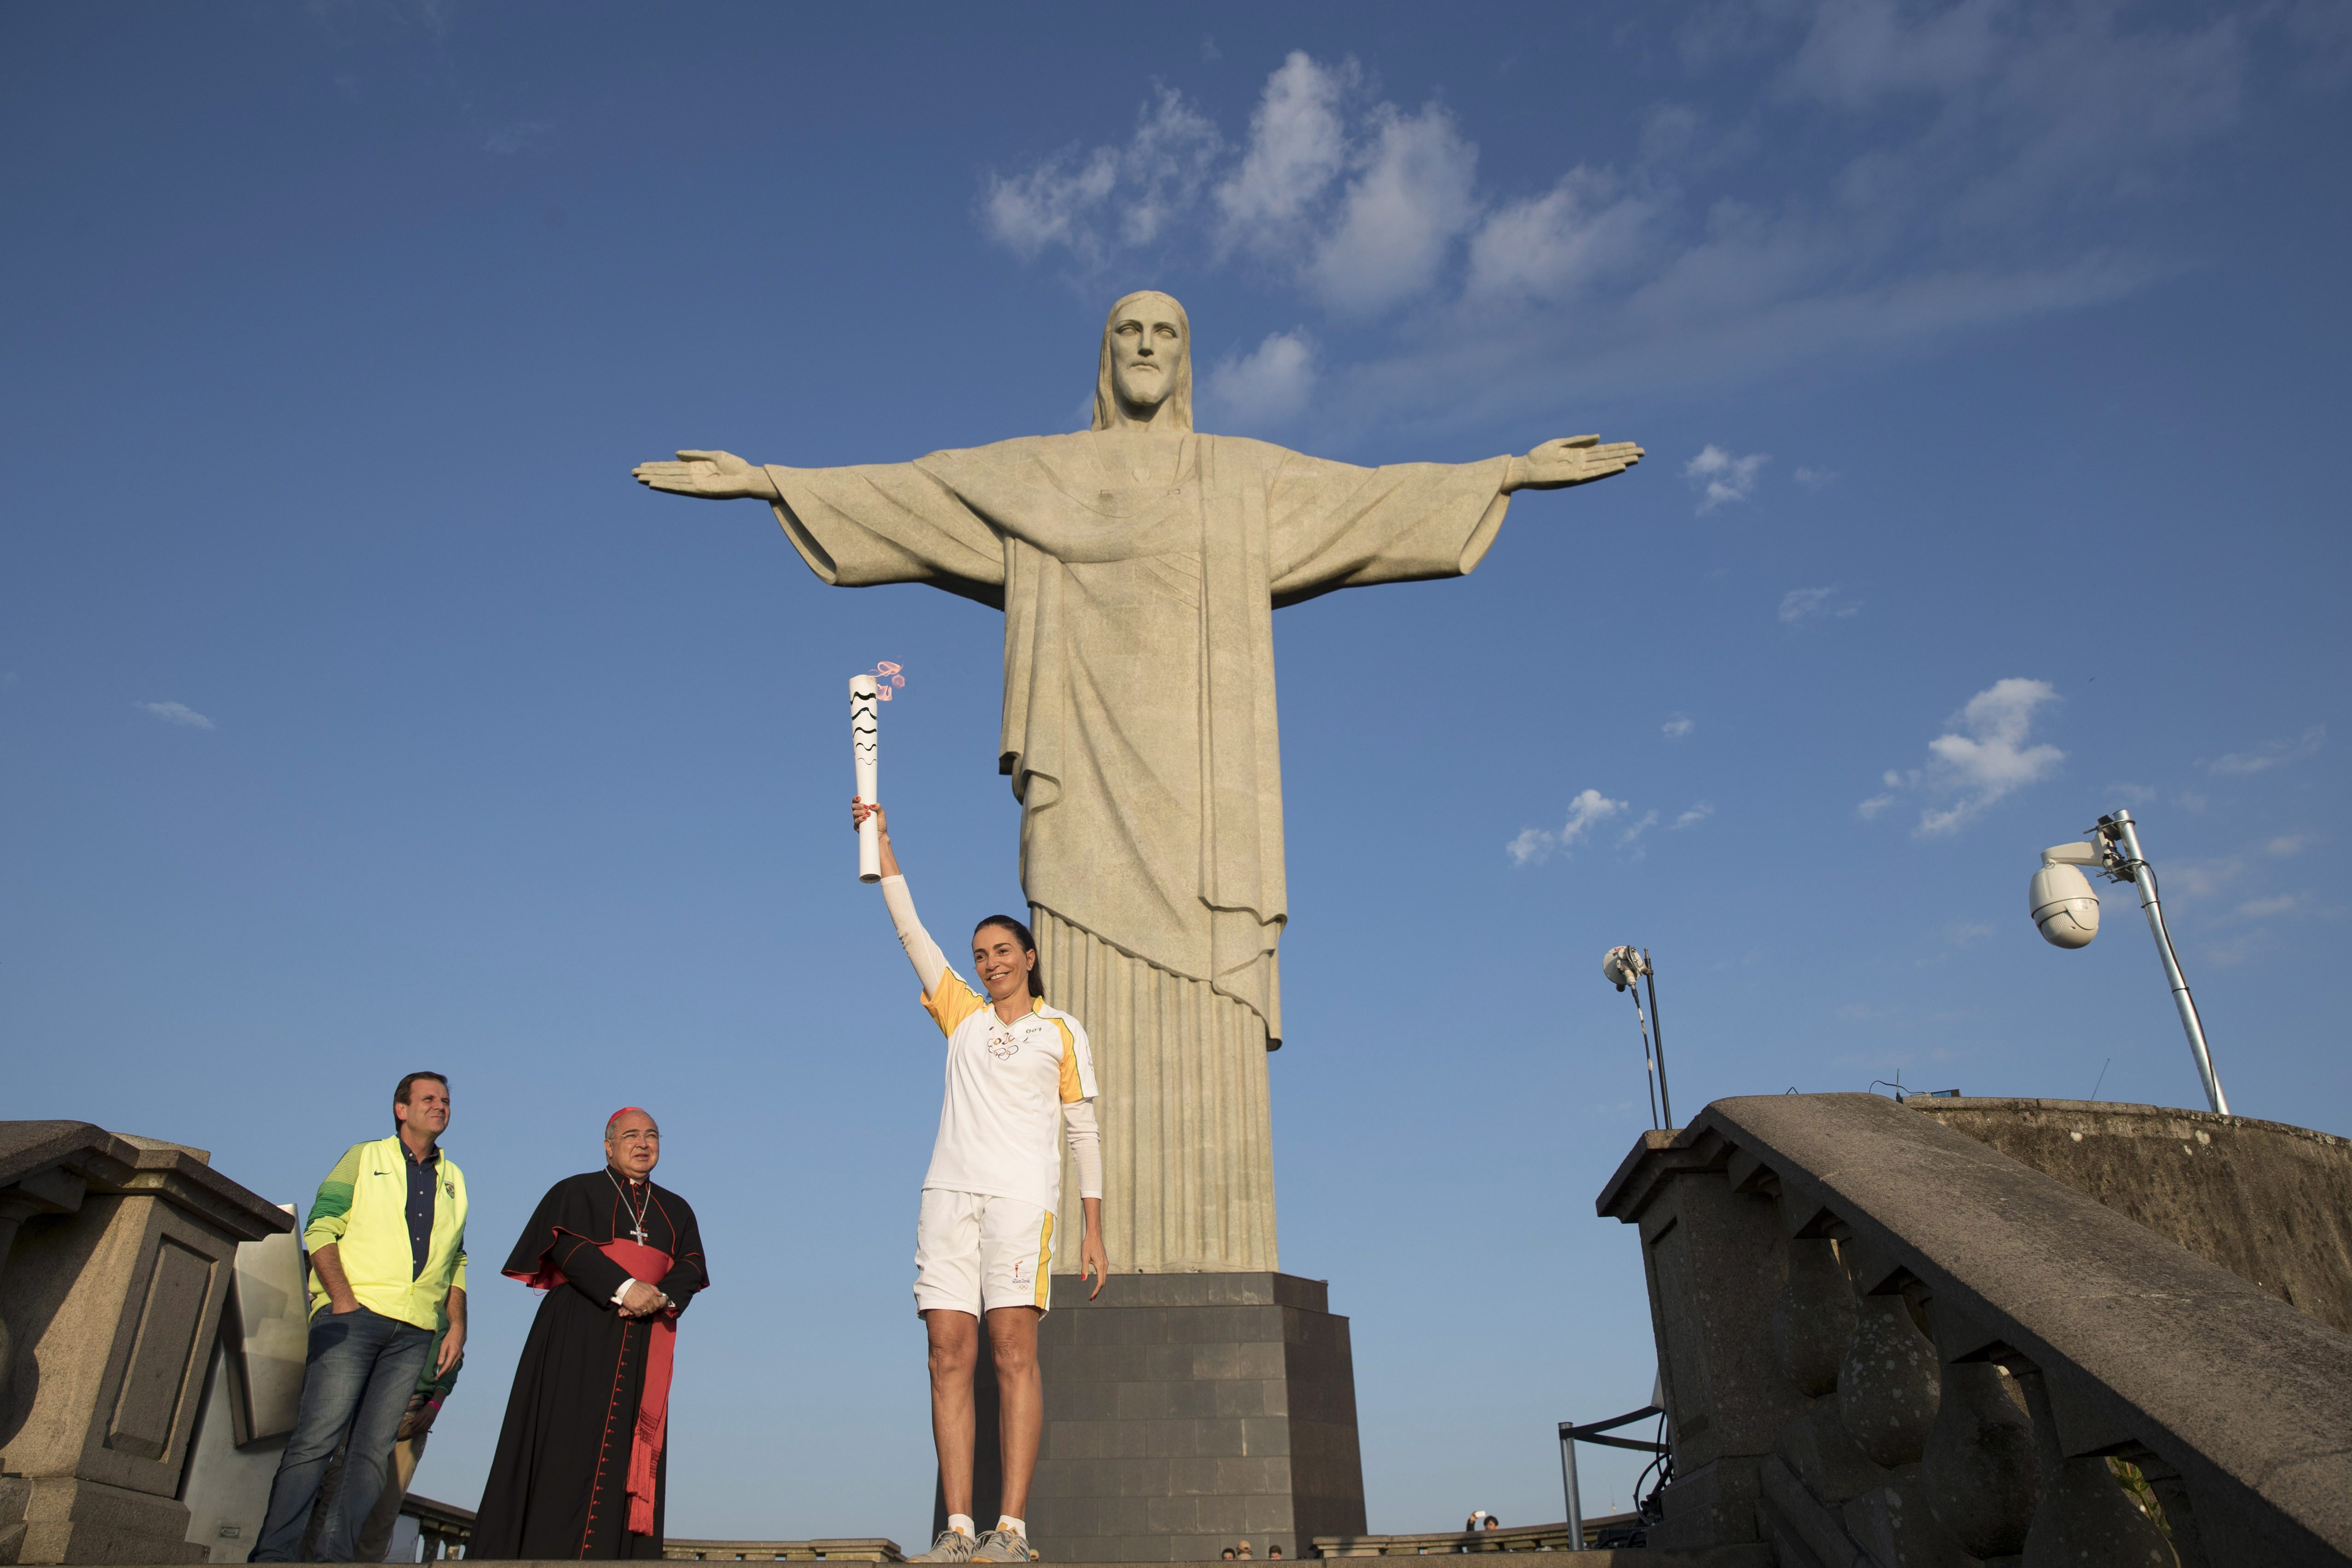 Brazil's Isabel Barroso Salgado carries the Olympic torch in front of the Christ the Redeemer statue on its way for the opening ceremony of Rio's 2016 Summer Olympics in Rio de Janeiro, Brazil, Friday, Aug. 5, 2016.